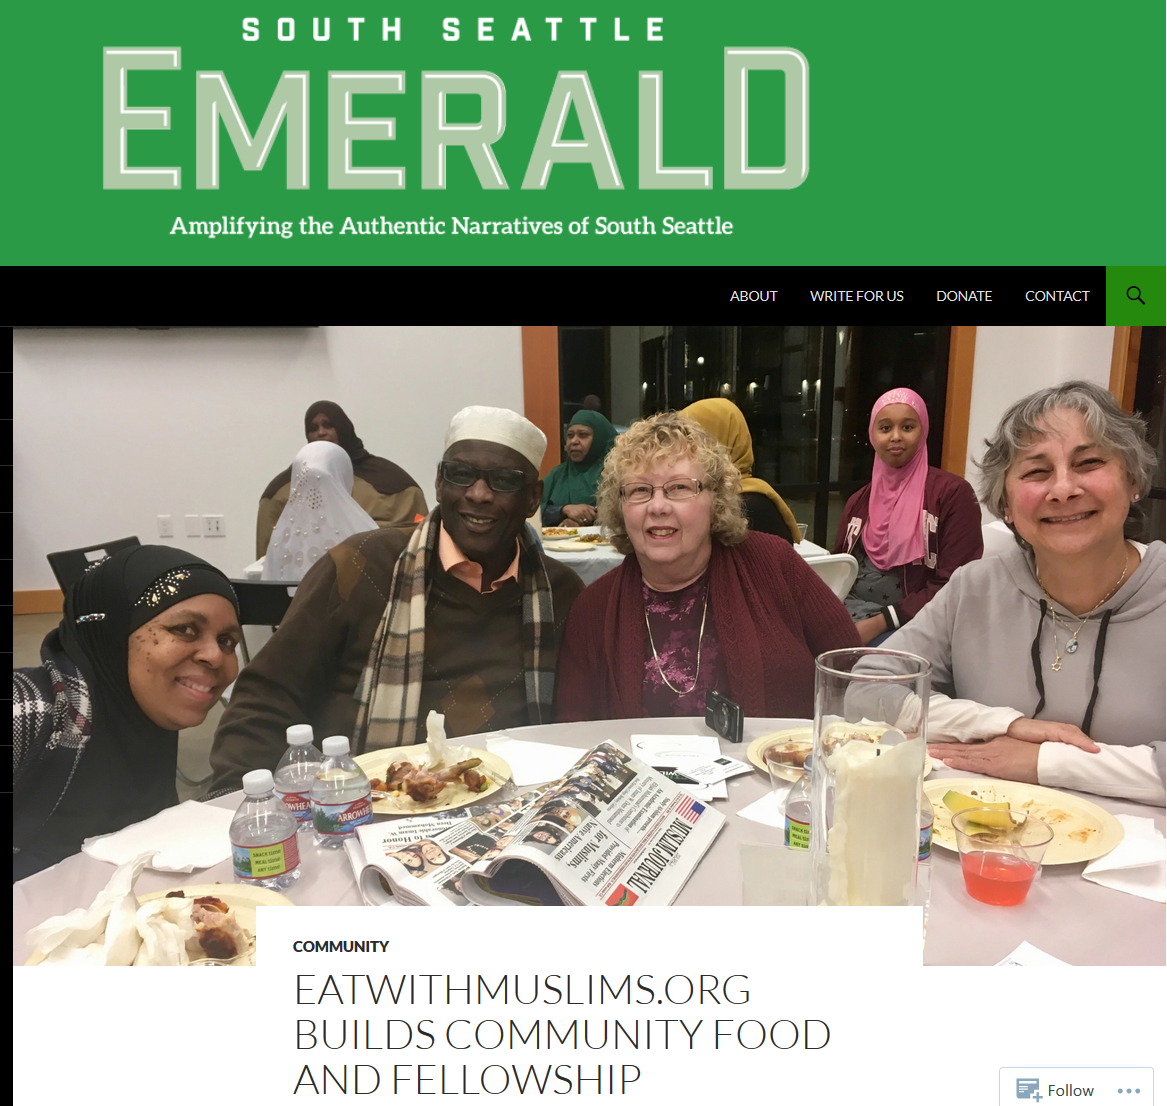 Eatwithmuslims.org Builds Community, Food and Fellowship - 12/21/2018: Peals of laughter and layers of conversation in Arabic, Somali, and English echoed up to the high ceilings of the Sullivan Community Center in Tukwila on Saturday November 17th, when 50 guests shared a meal in an event hosted by EatWithMuslims.org and Action Tukwila, a grassroots group that organizes community-building projects.